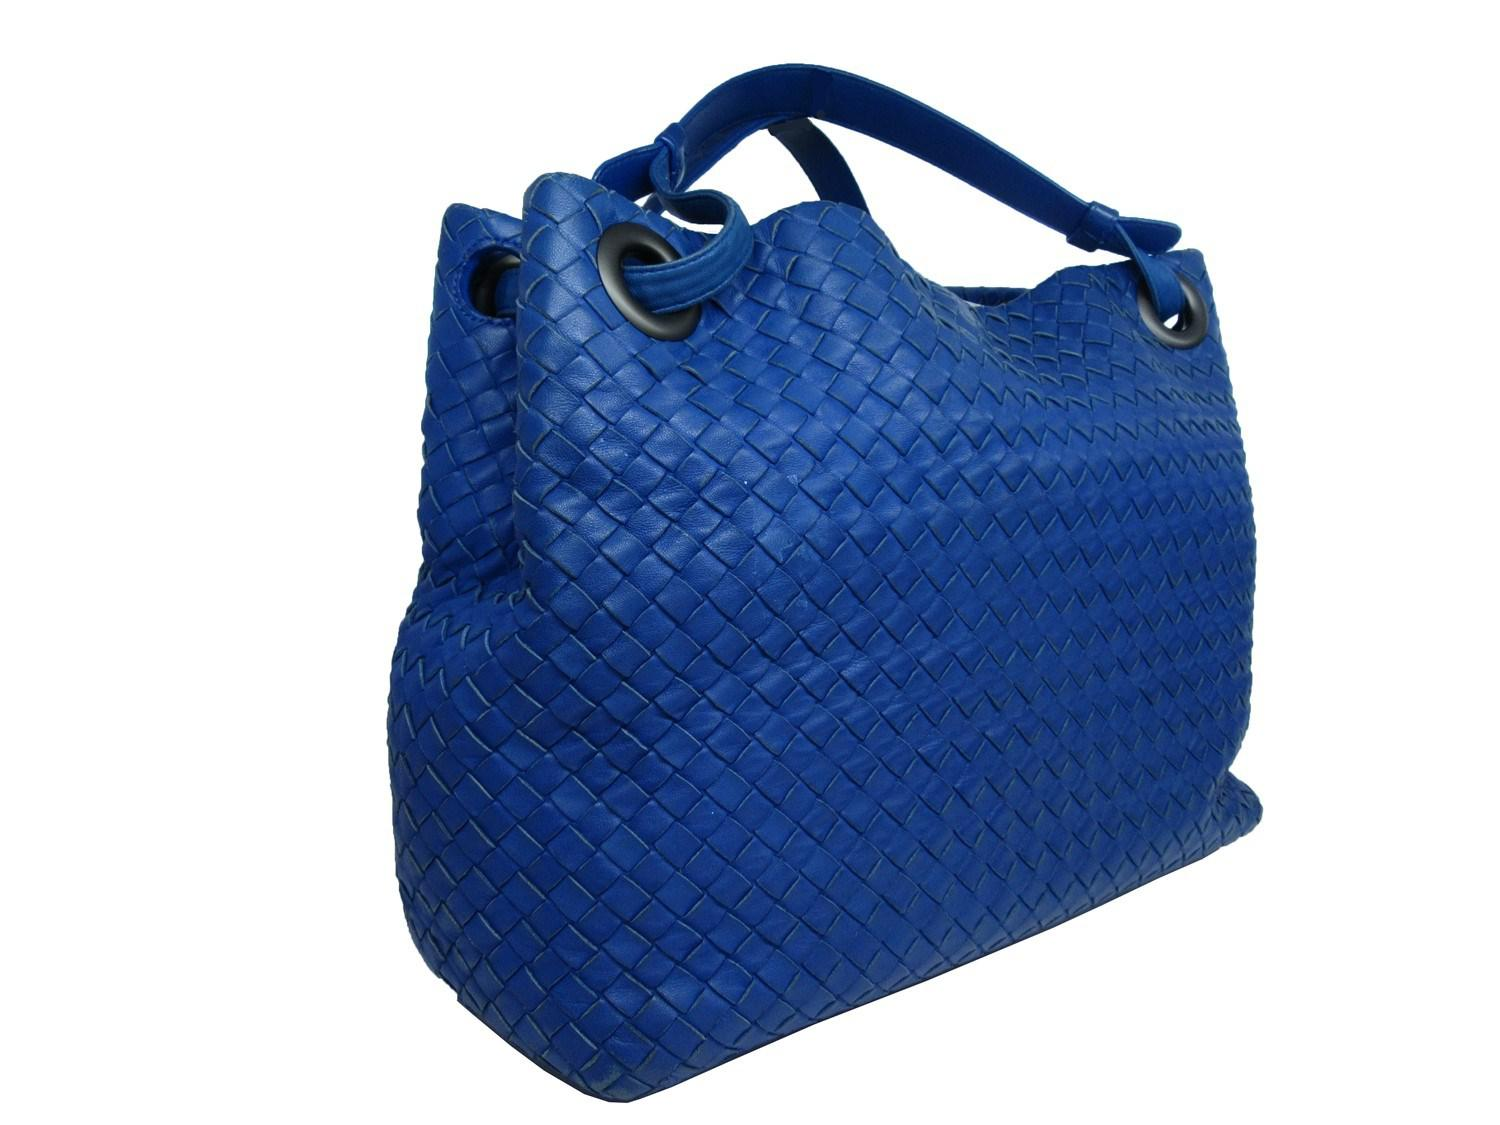 Lyst - Bottega Veneta Auth Bv Intrecciato Shoulder Tote Bag Lamb ... c70e4b7cda967